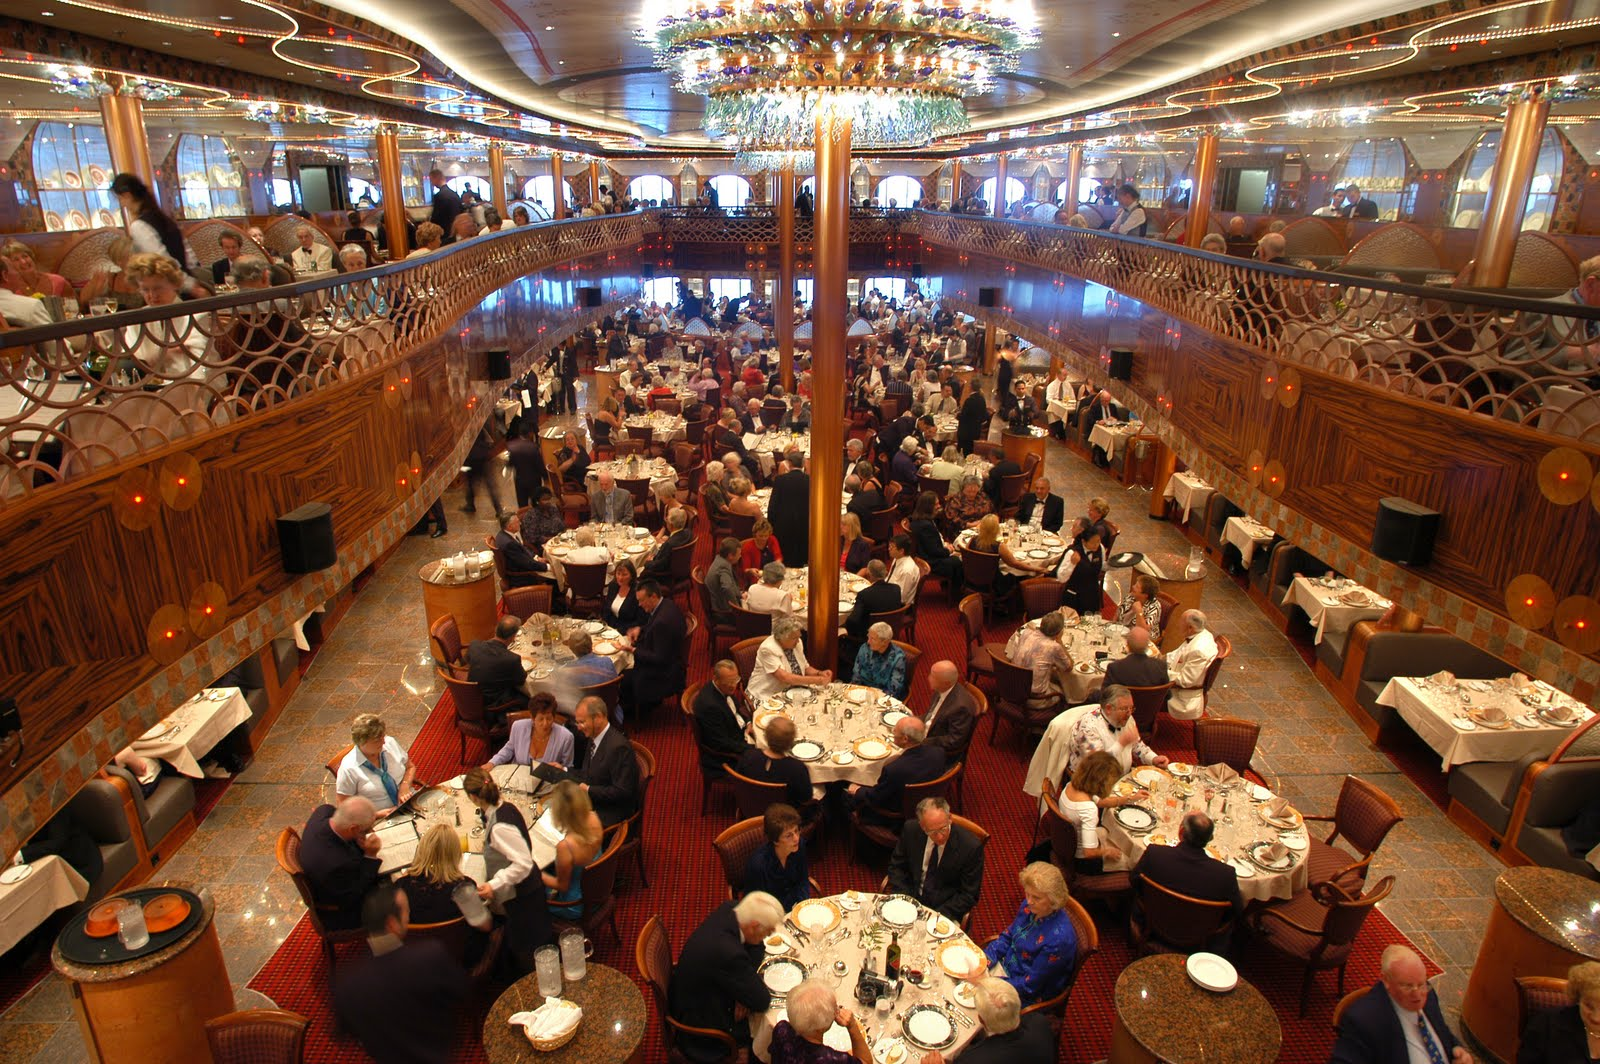 Carnival Conquest Dining Room Dress Code